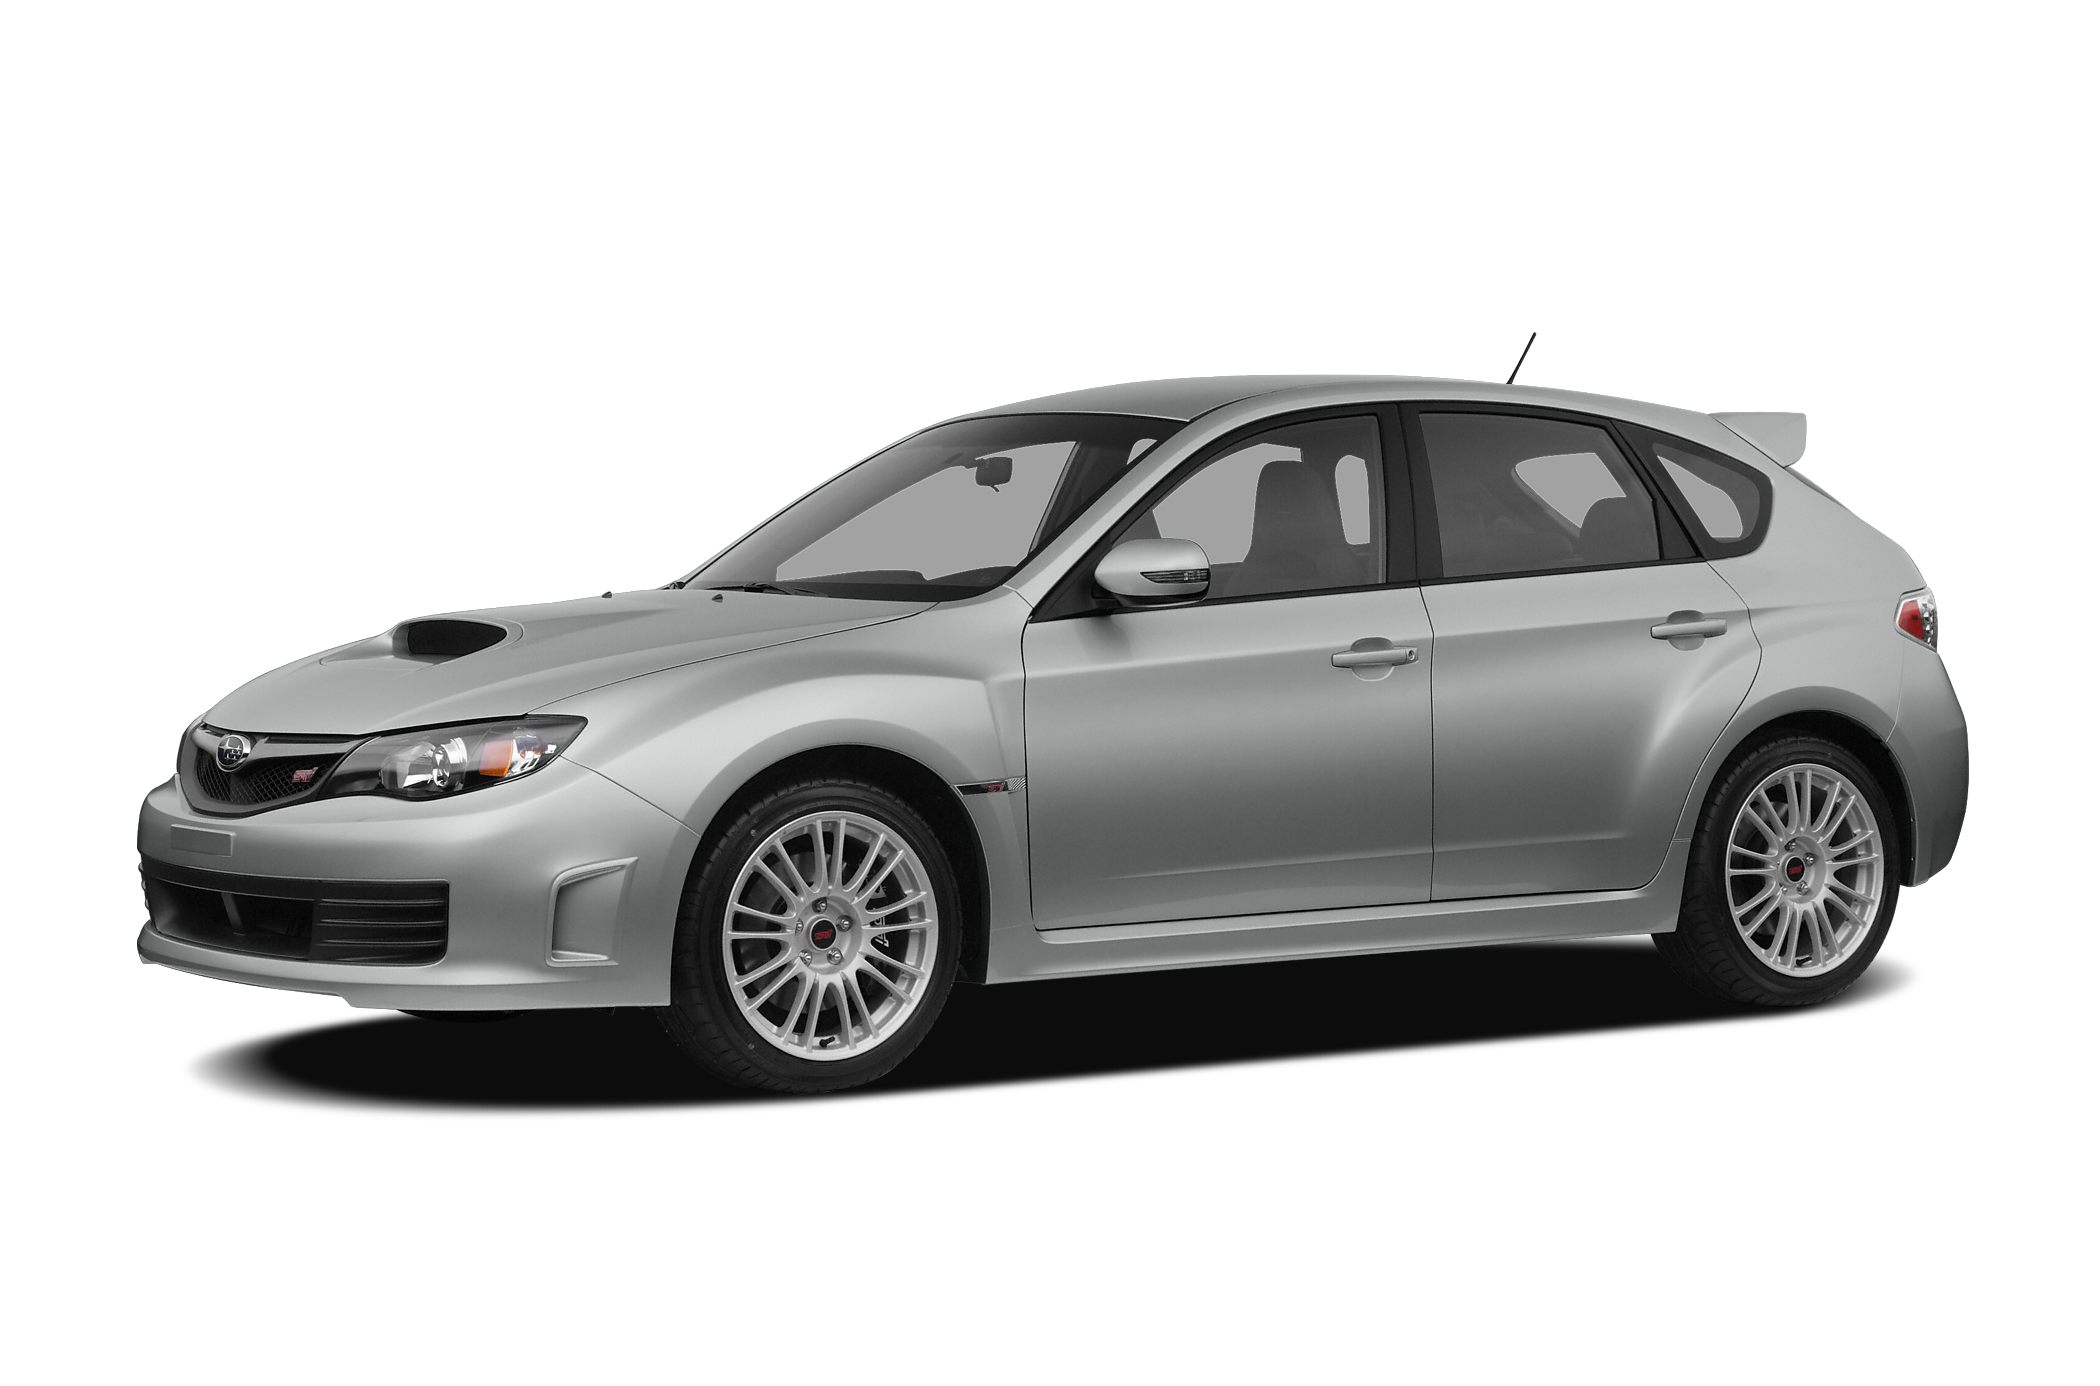 2009 Subaru Impreza WRX STi